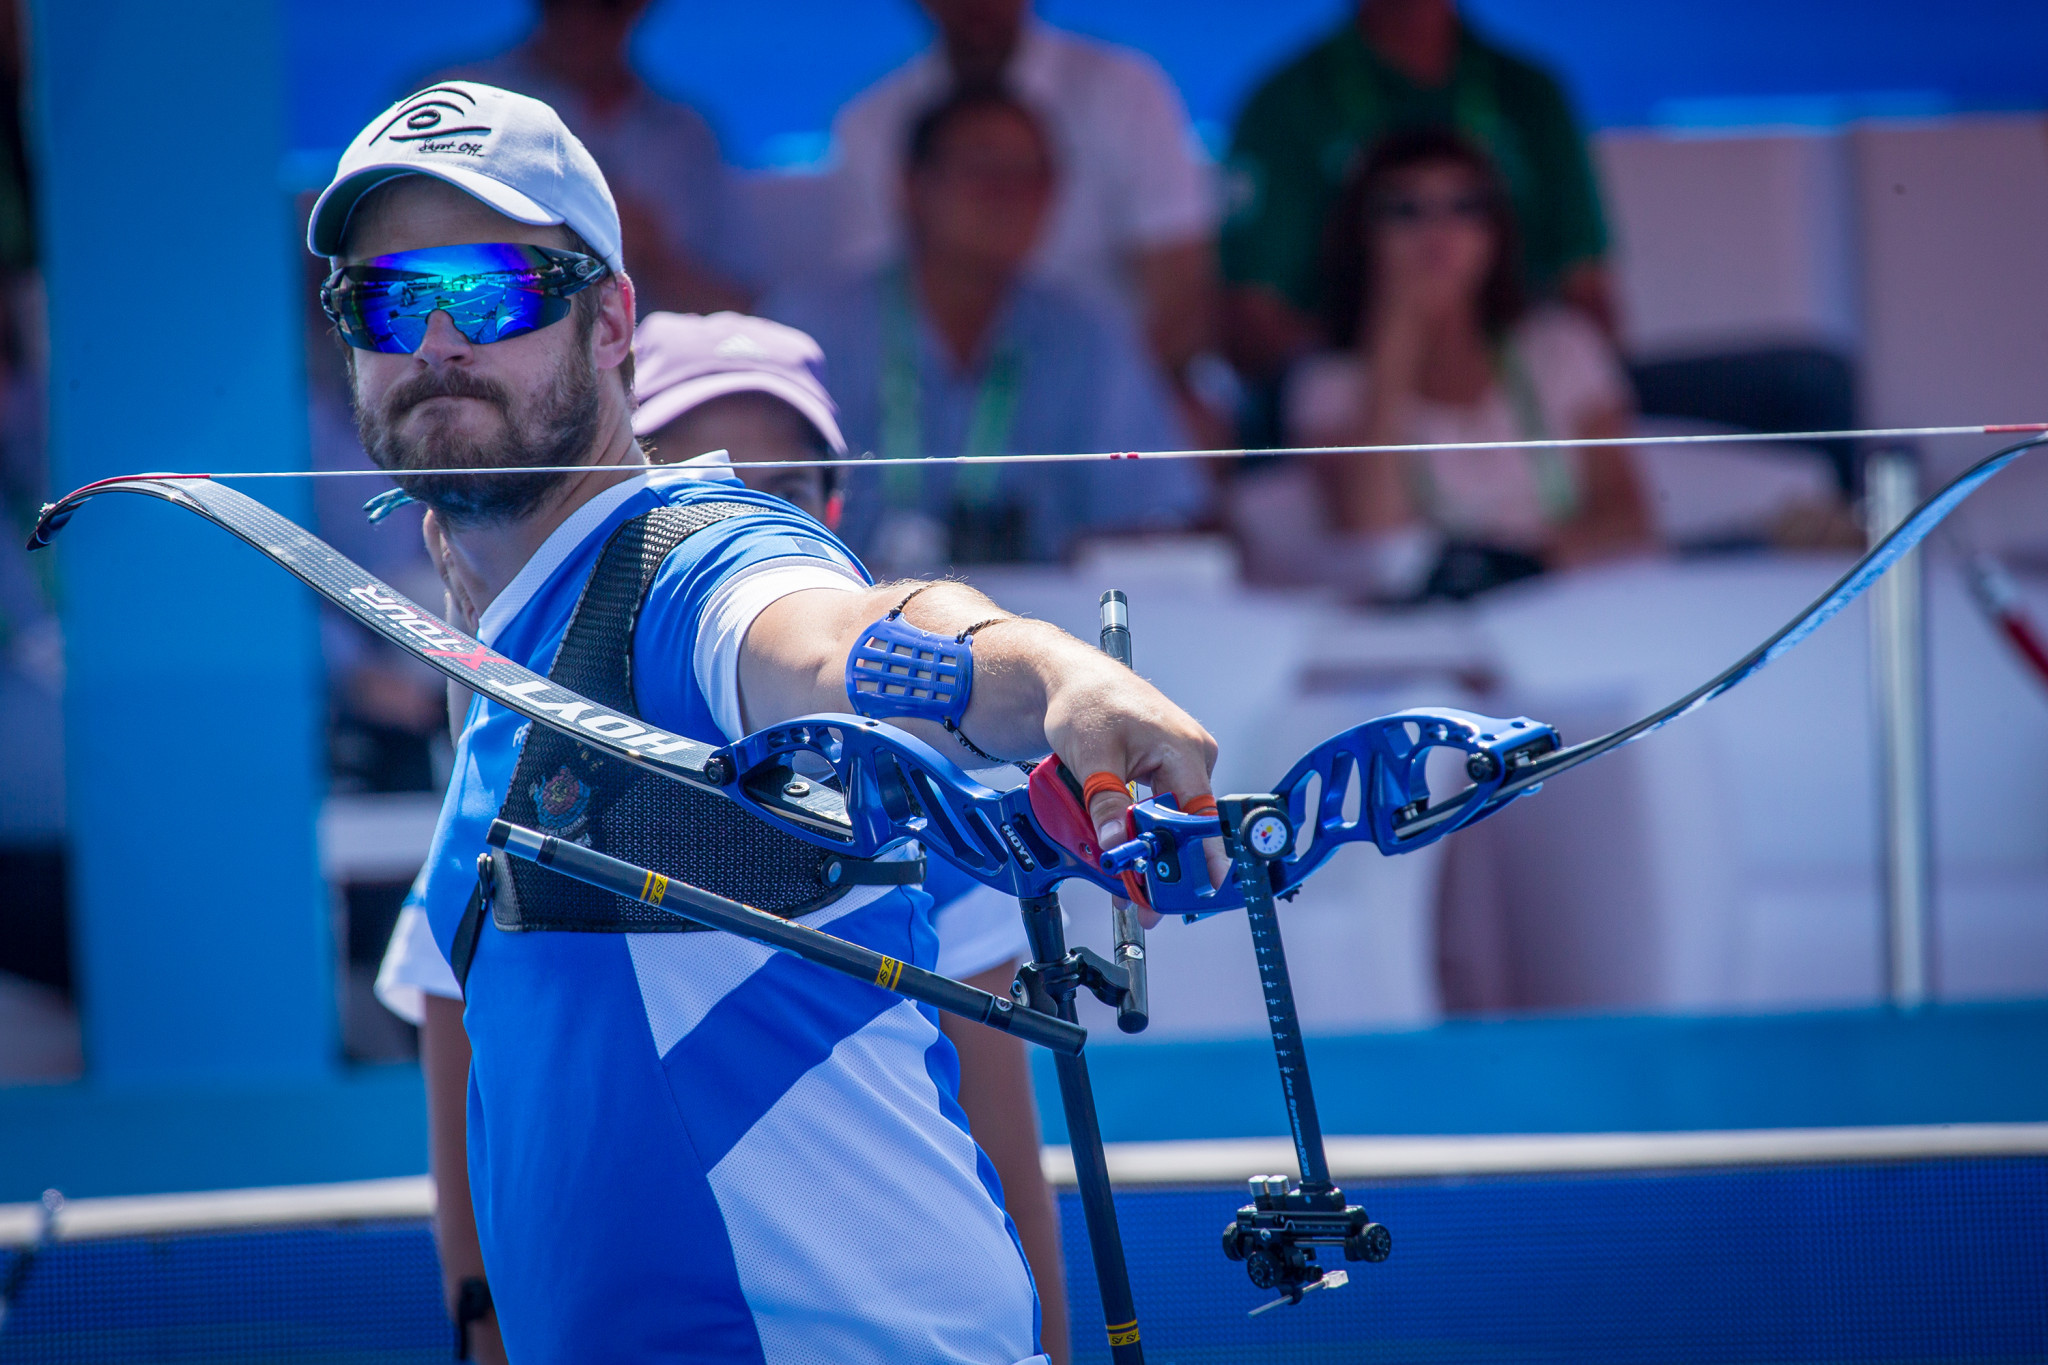 Valladont and Villard claim French double as European Field Archery Championships concludes